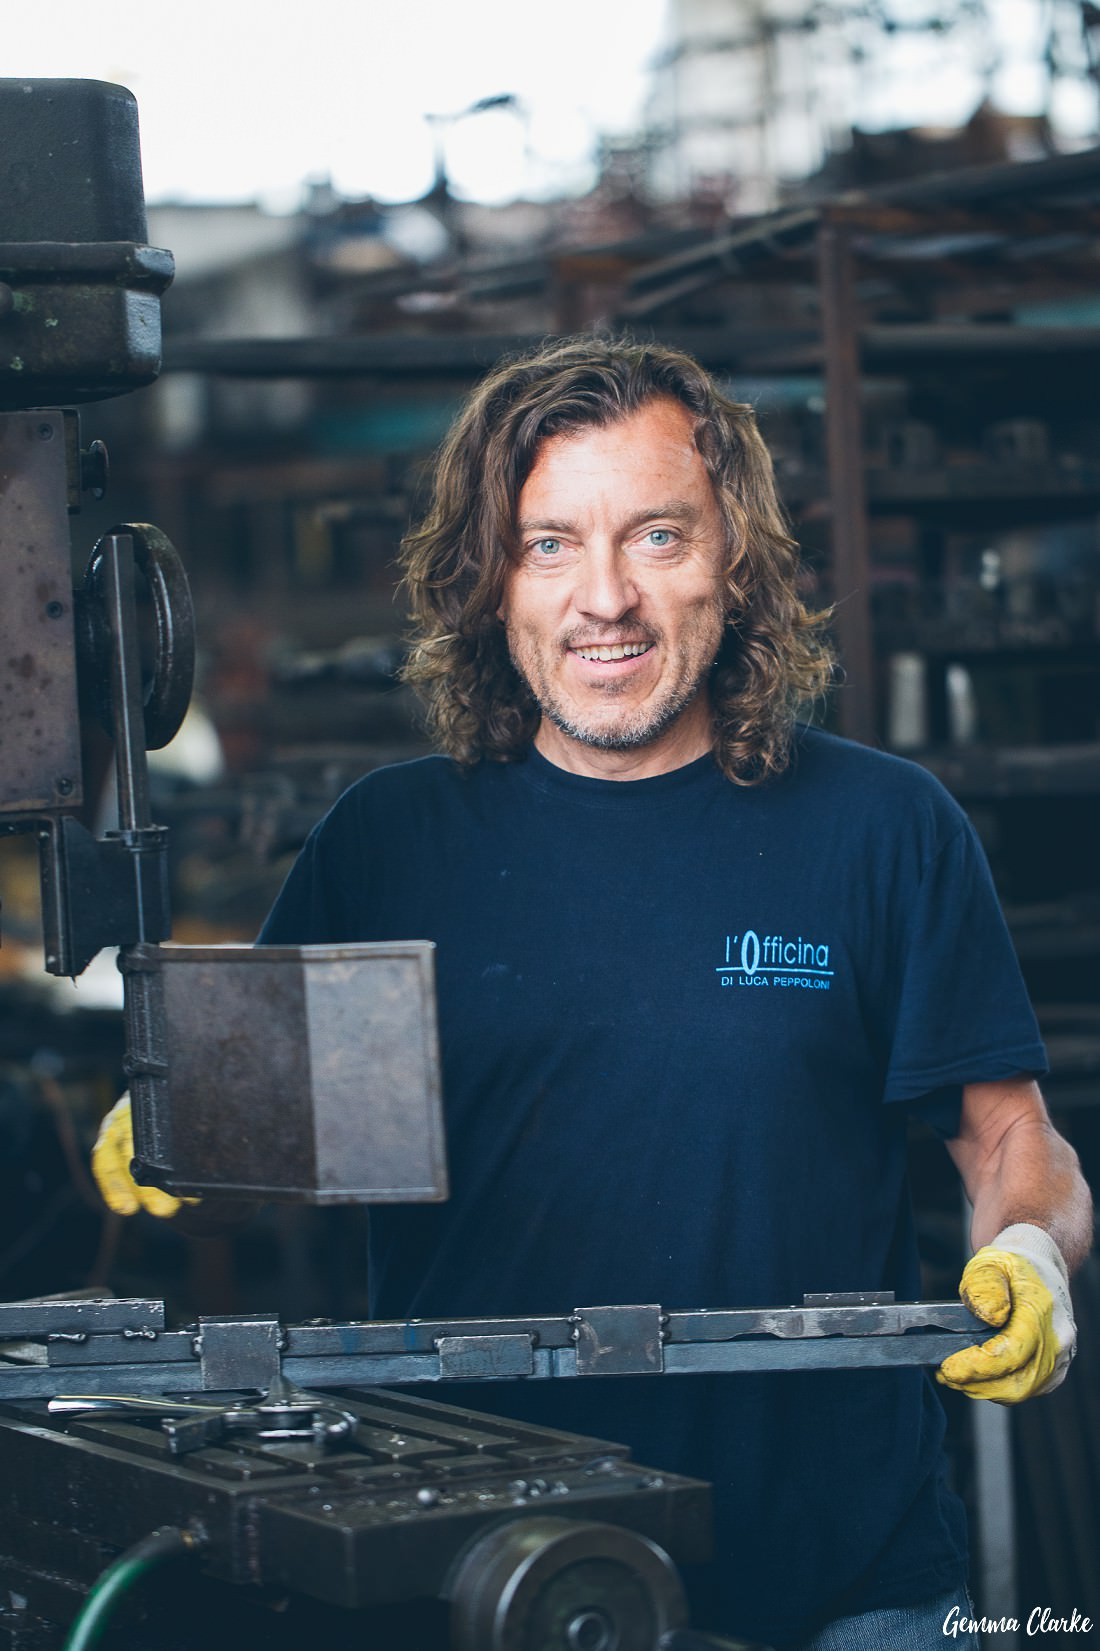 Blacksmith Luca Peppoloni works on a machine in these Small Business Lifestyle Portraits